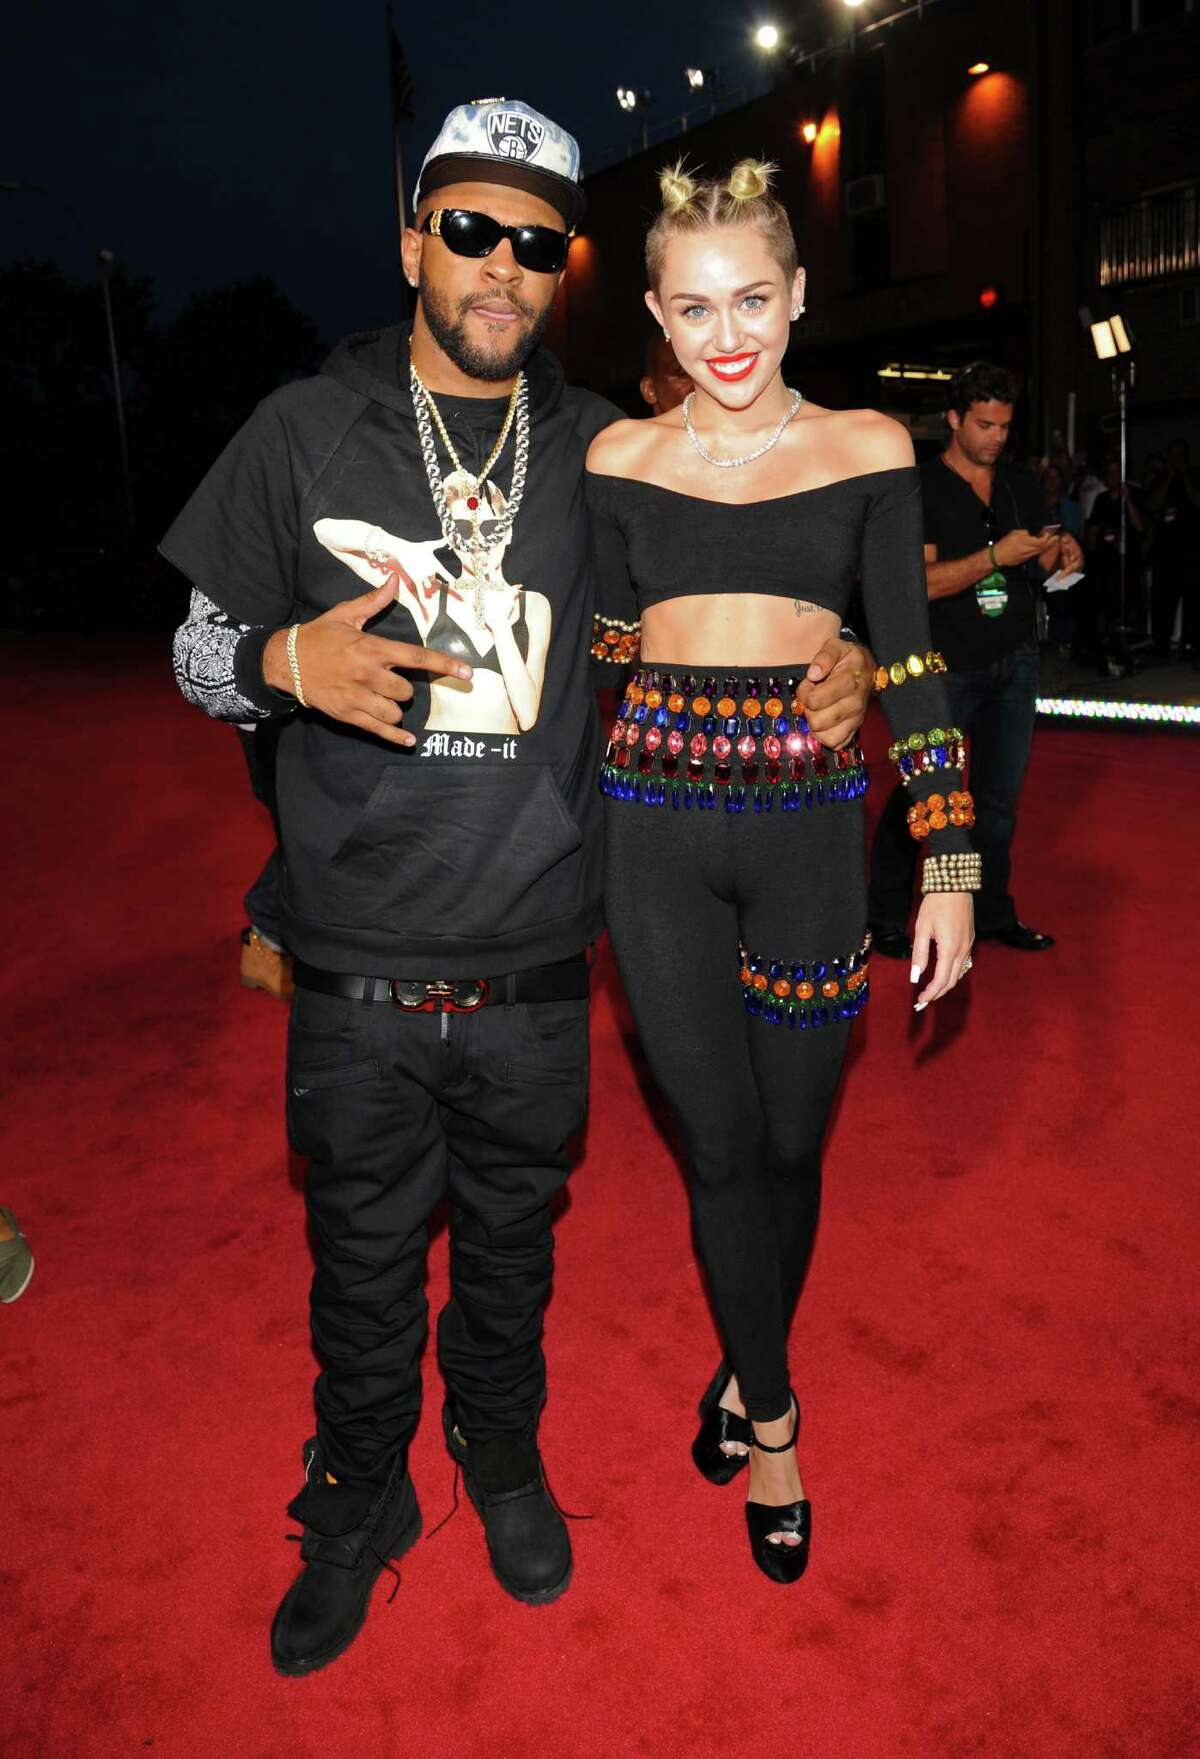 Mike Will Made It and Miley Cyrus, right, pose at the MTV Video Music Awards on Sunday, Aug. 25, 2013, at the Barclays Center in the Brooklyn borough of New York.